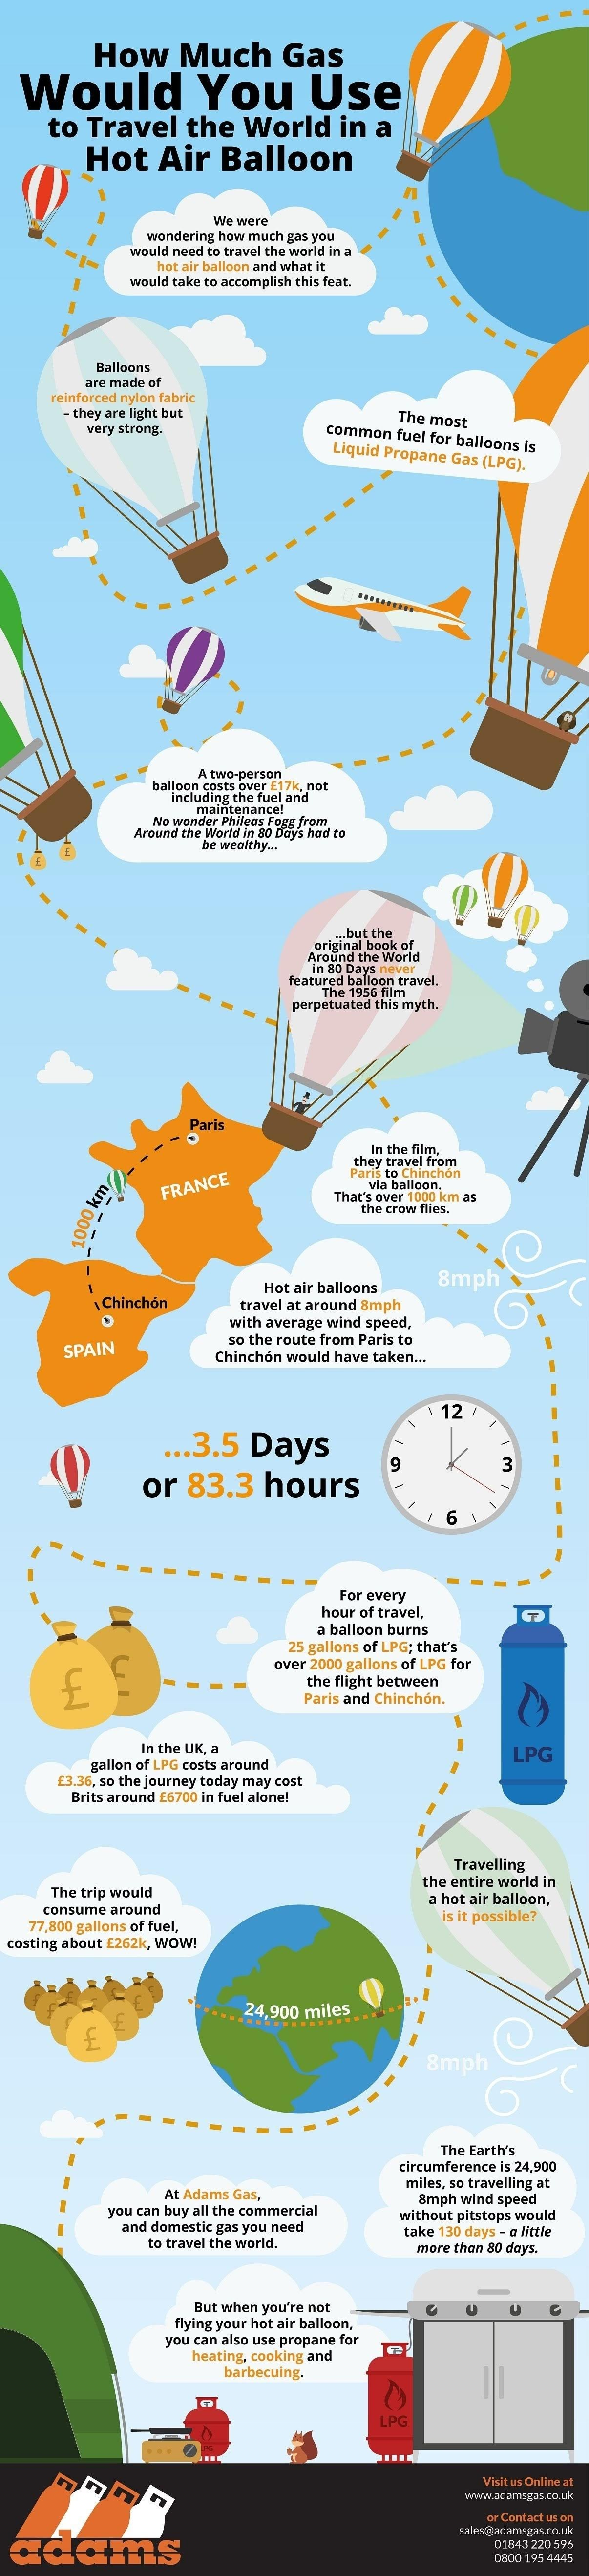 How Much Gas Would You Use to Travel the World in a Hot Air Balloon? #infographic